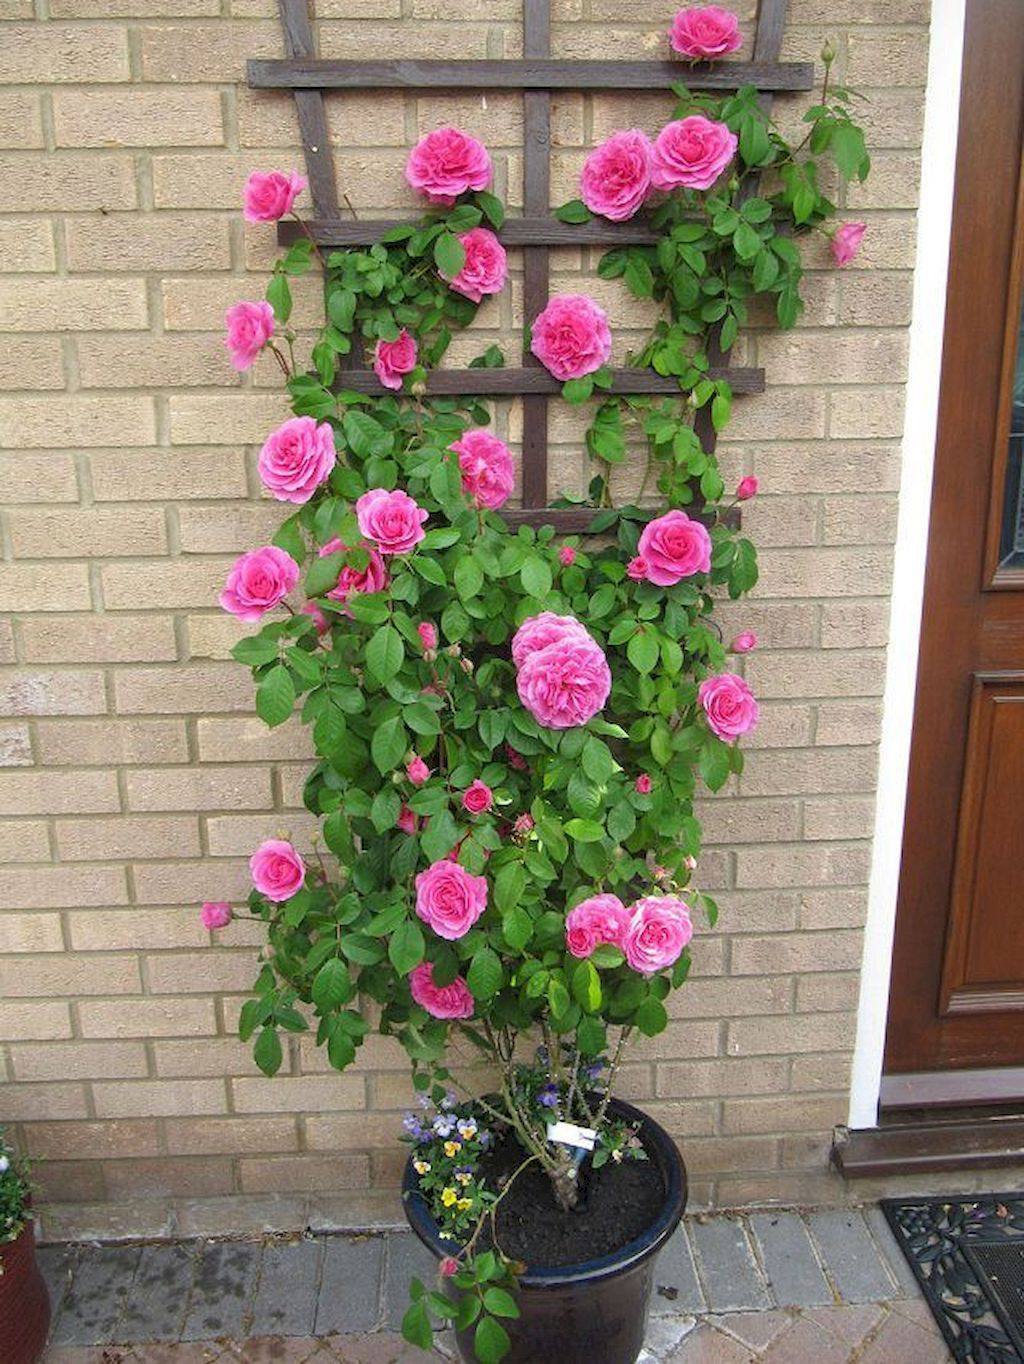 Awesome 50 Beautiful Container Garden Flowers Ideas Https Architeworks Com 50 Beautiful Contain Climbing Flowers Container Plants Container Gardening Flowers